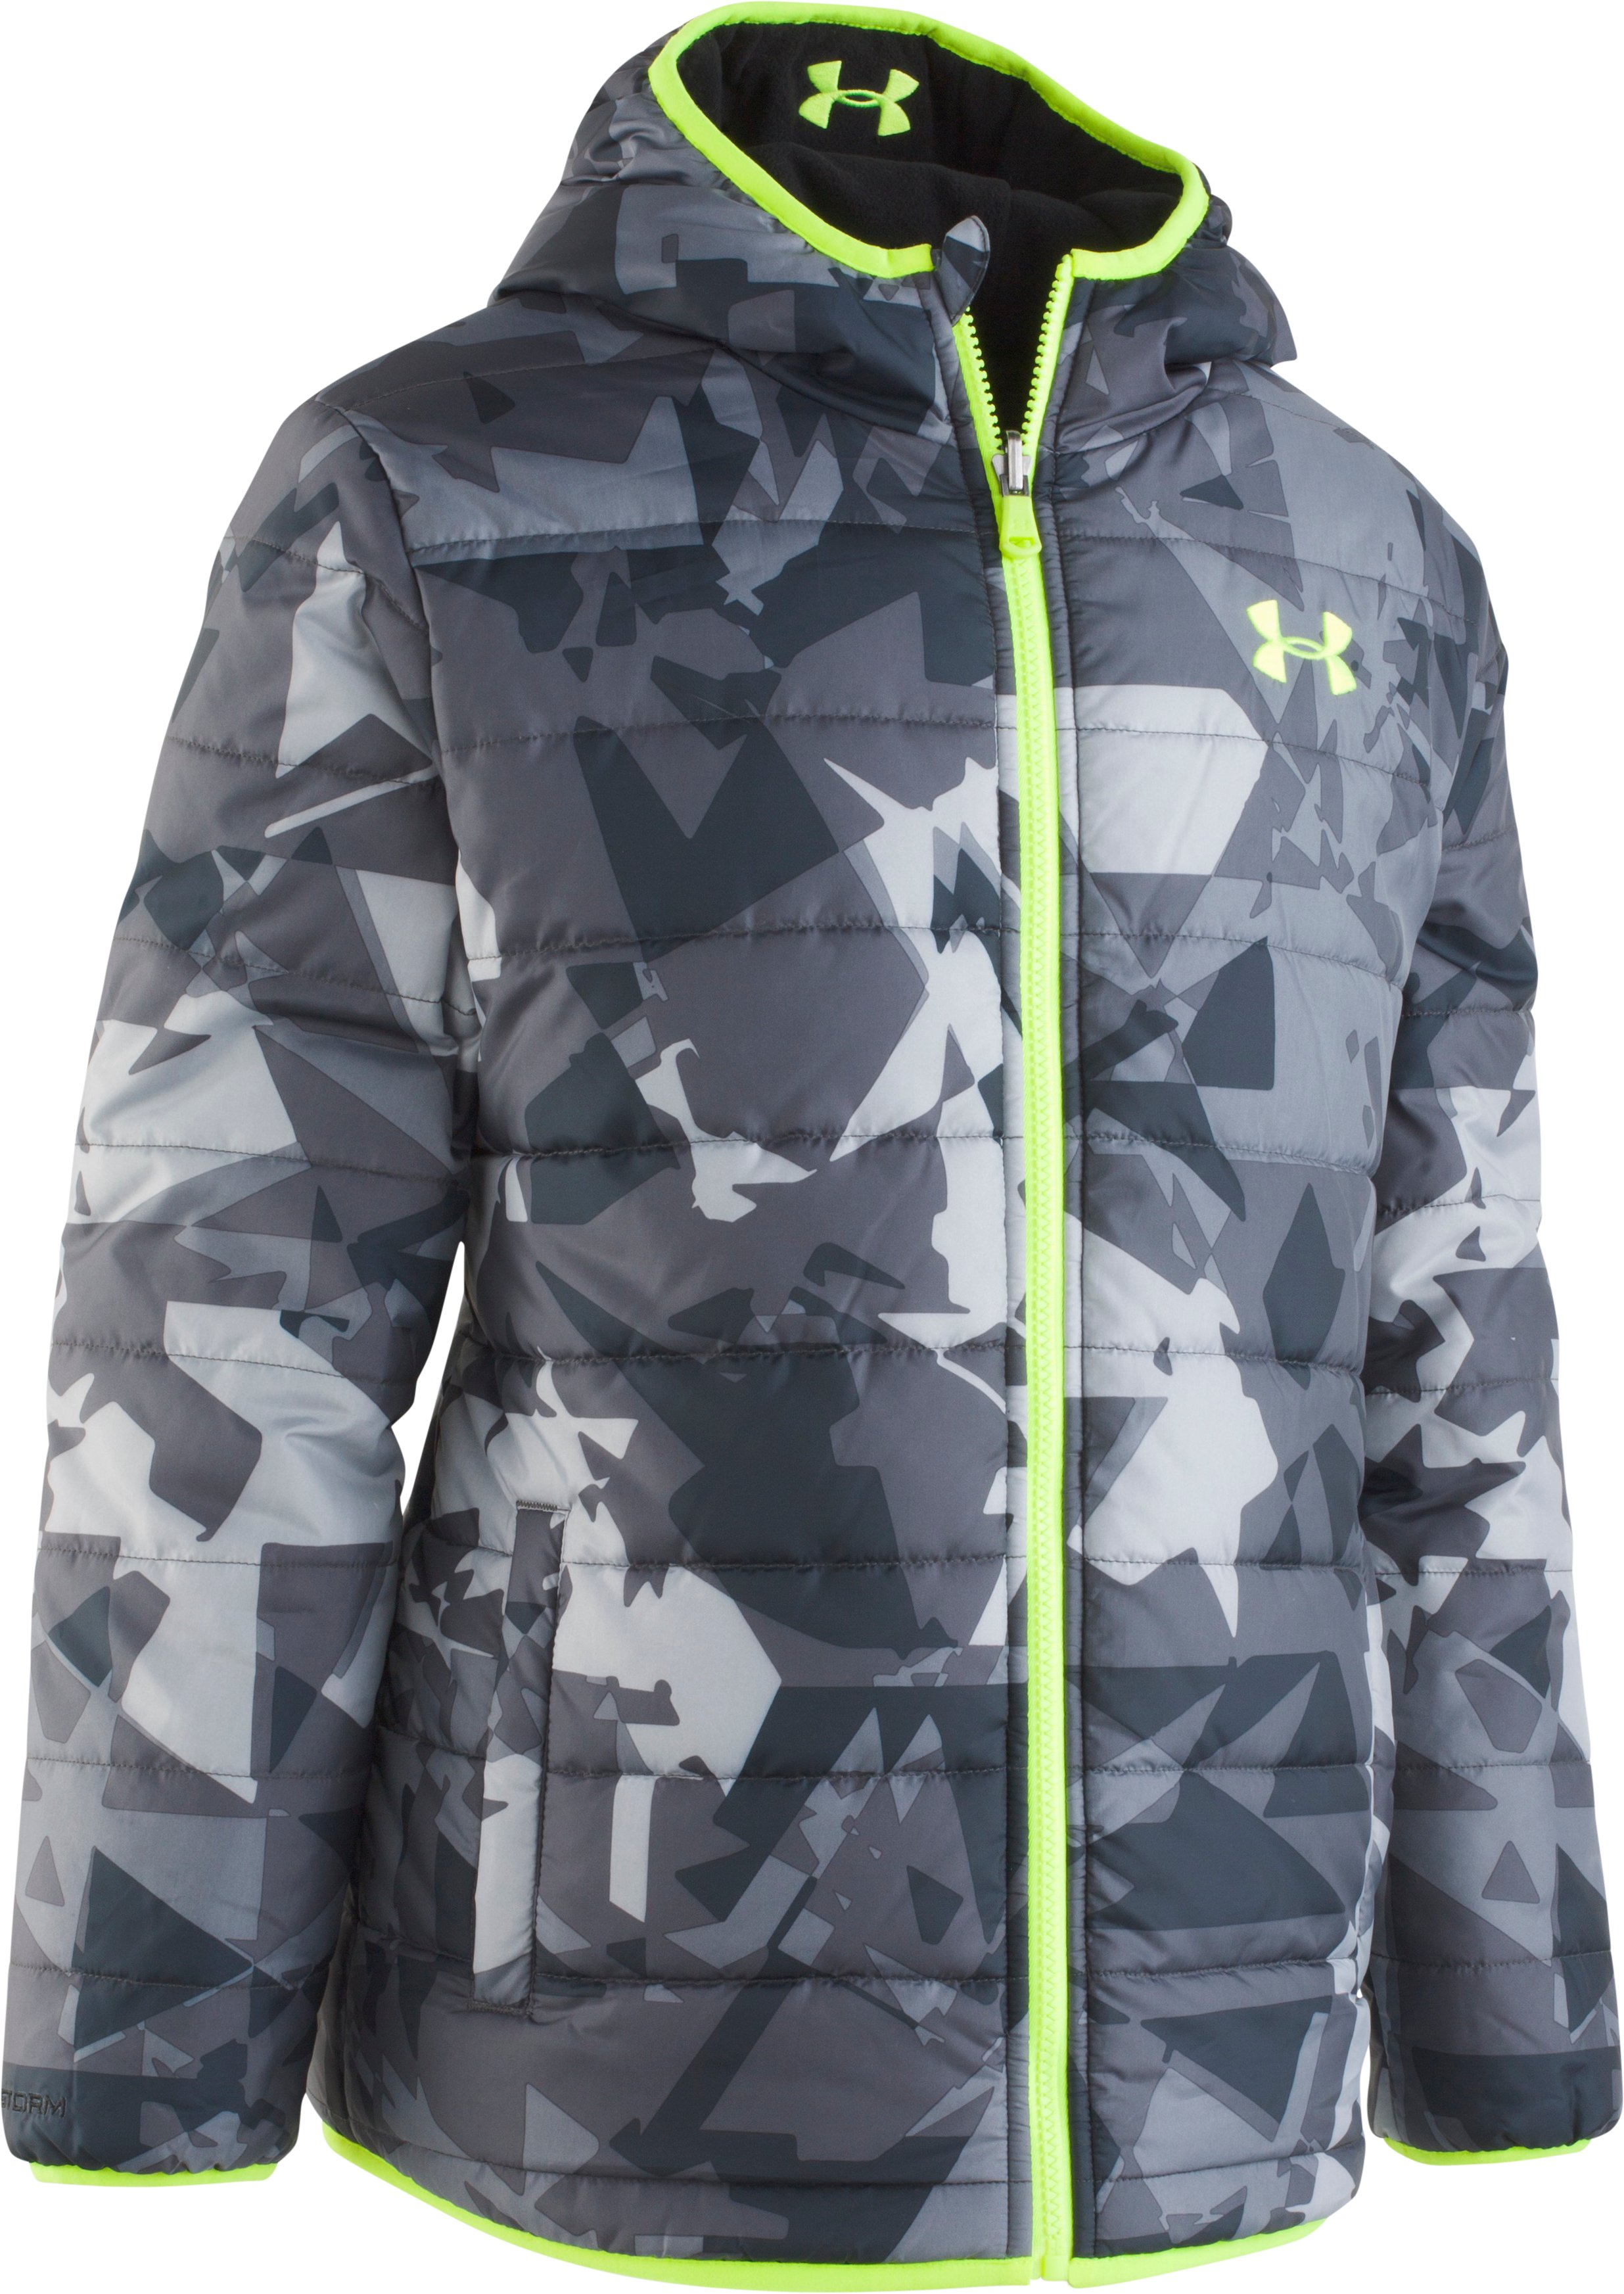 puffer jackets for kids Boys' UA Printed Reversible Pronto Puffer Jacket